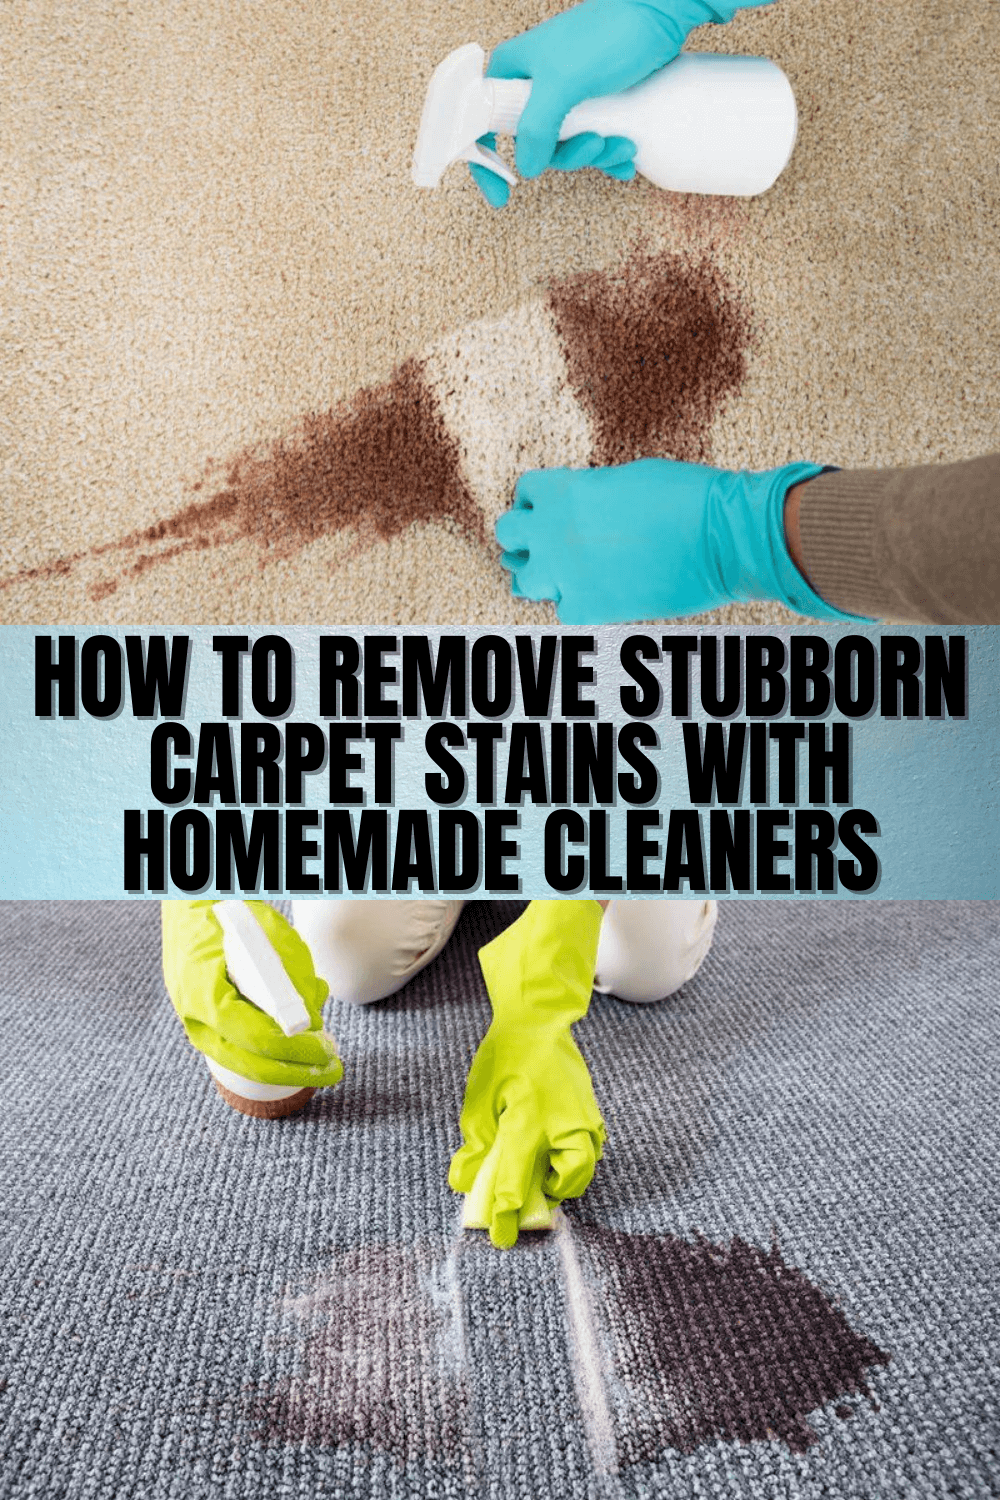 How to Remove Stubborn Carpet Stains with Homemade Cleaners